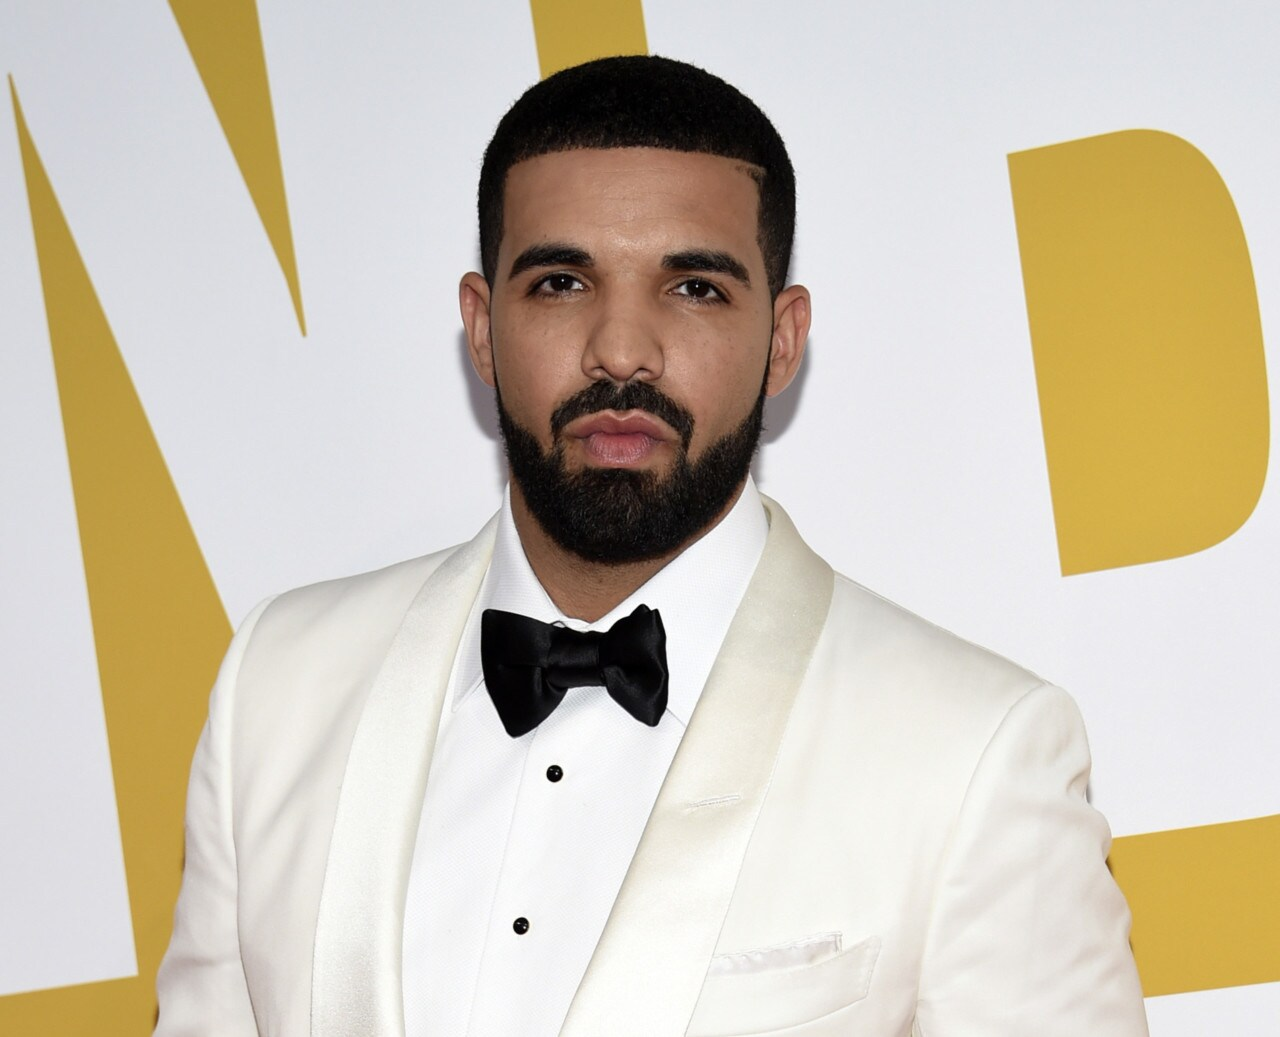 Drake has been busy collecting Hermès Birkin bags and Harry Potter books